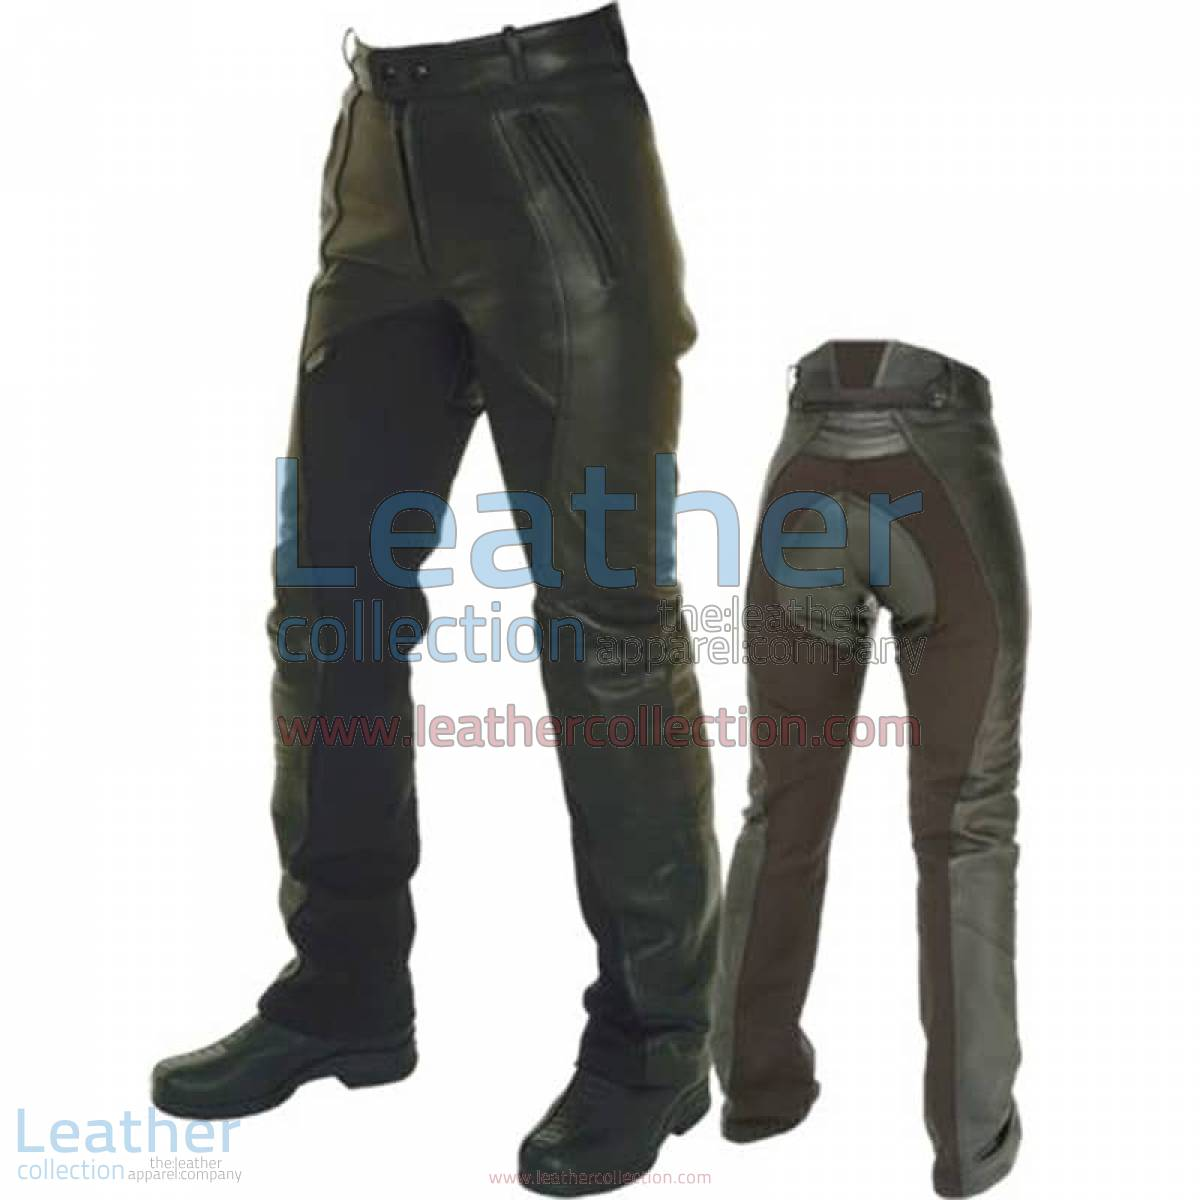 Comfort Motorcycle Pants | motorcycle pants,comfort pants